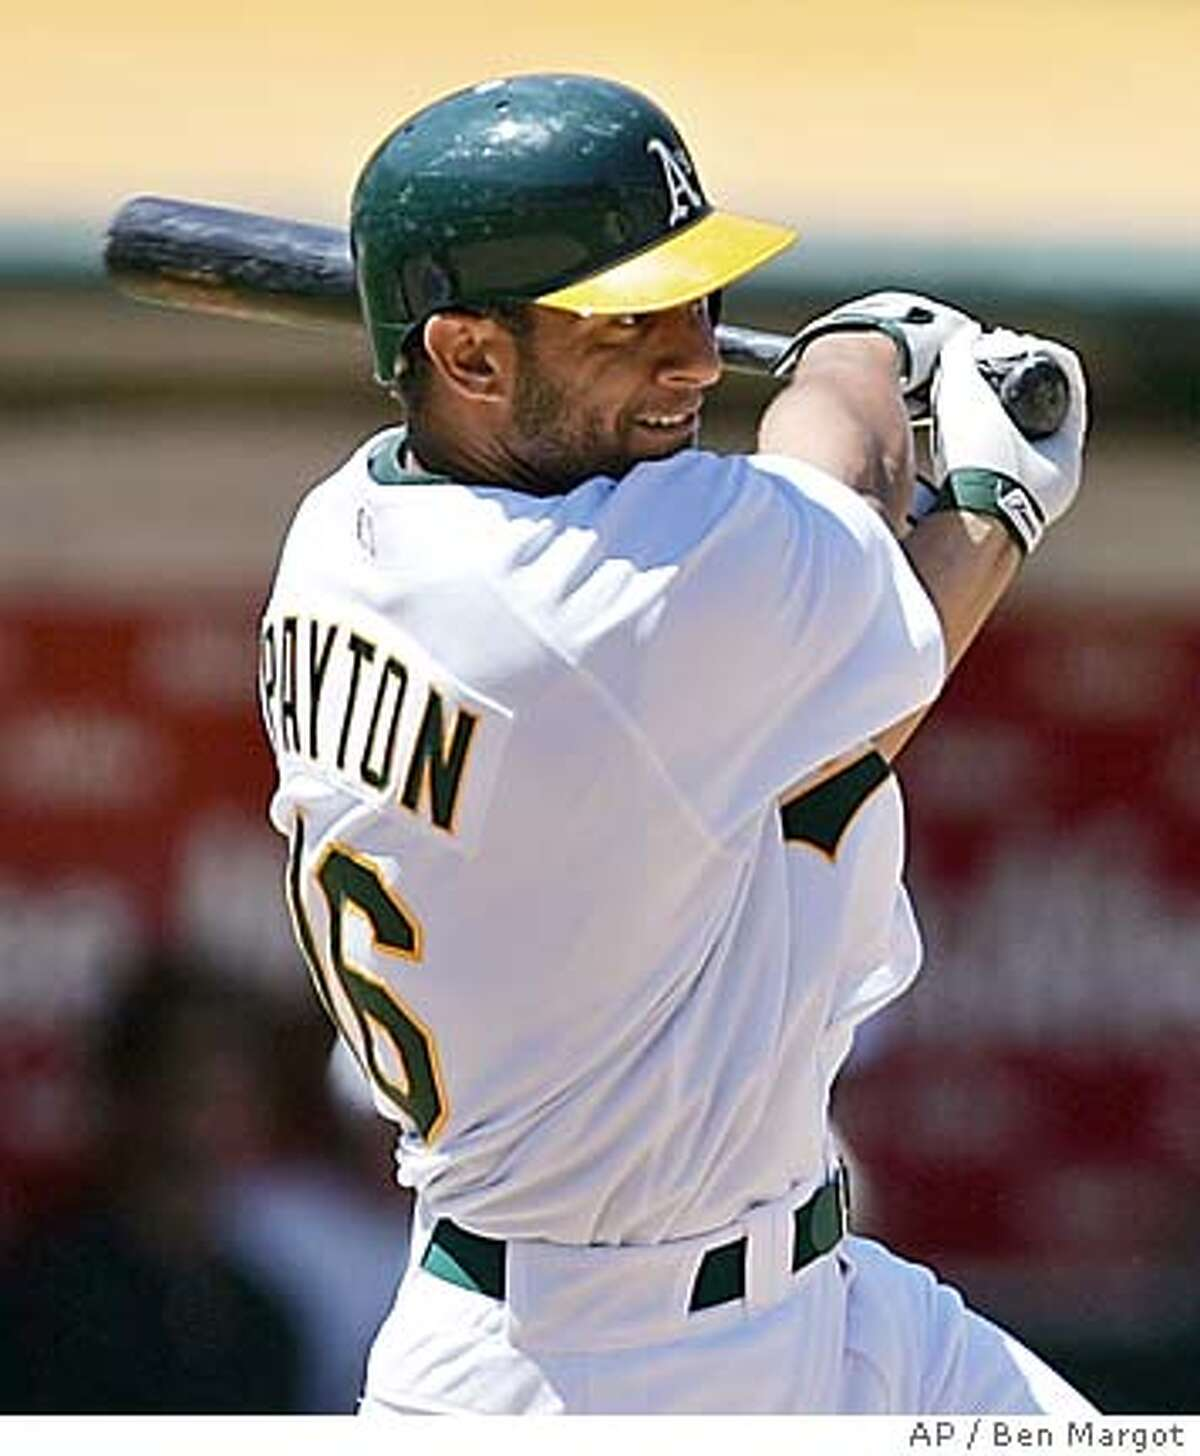 Oakland Athletics' Jay Payton swings for an RBI single off Detroit Tigers' Nate Robertson in the fifth inning Saturday, July 30, 2005, in Oakland, Calif. (AP Photo/Ben Margot)